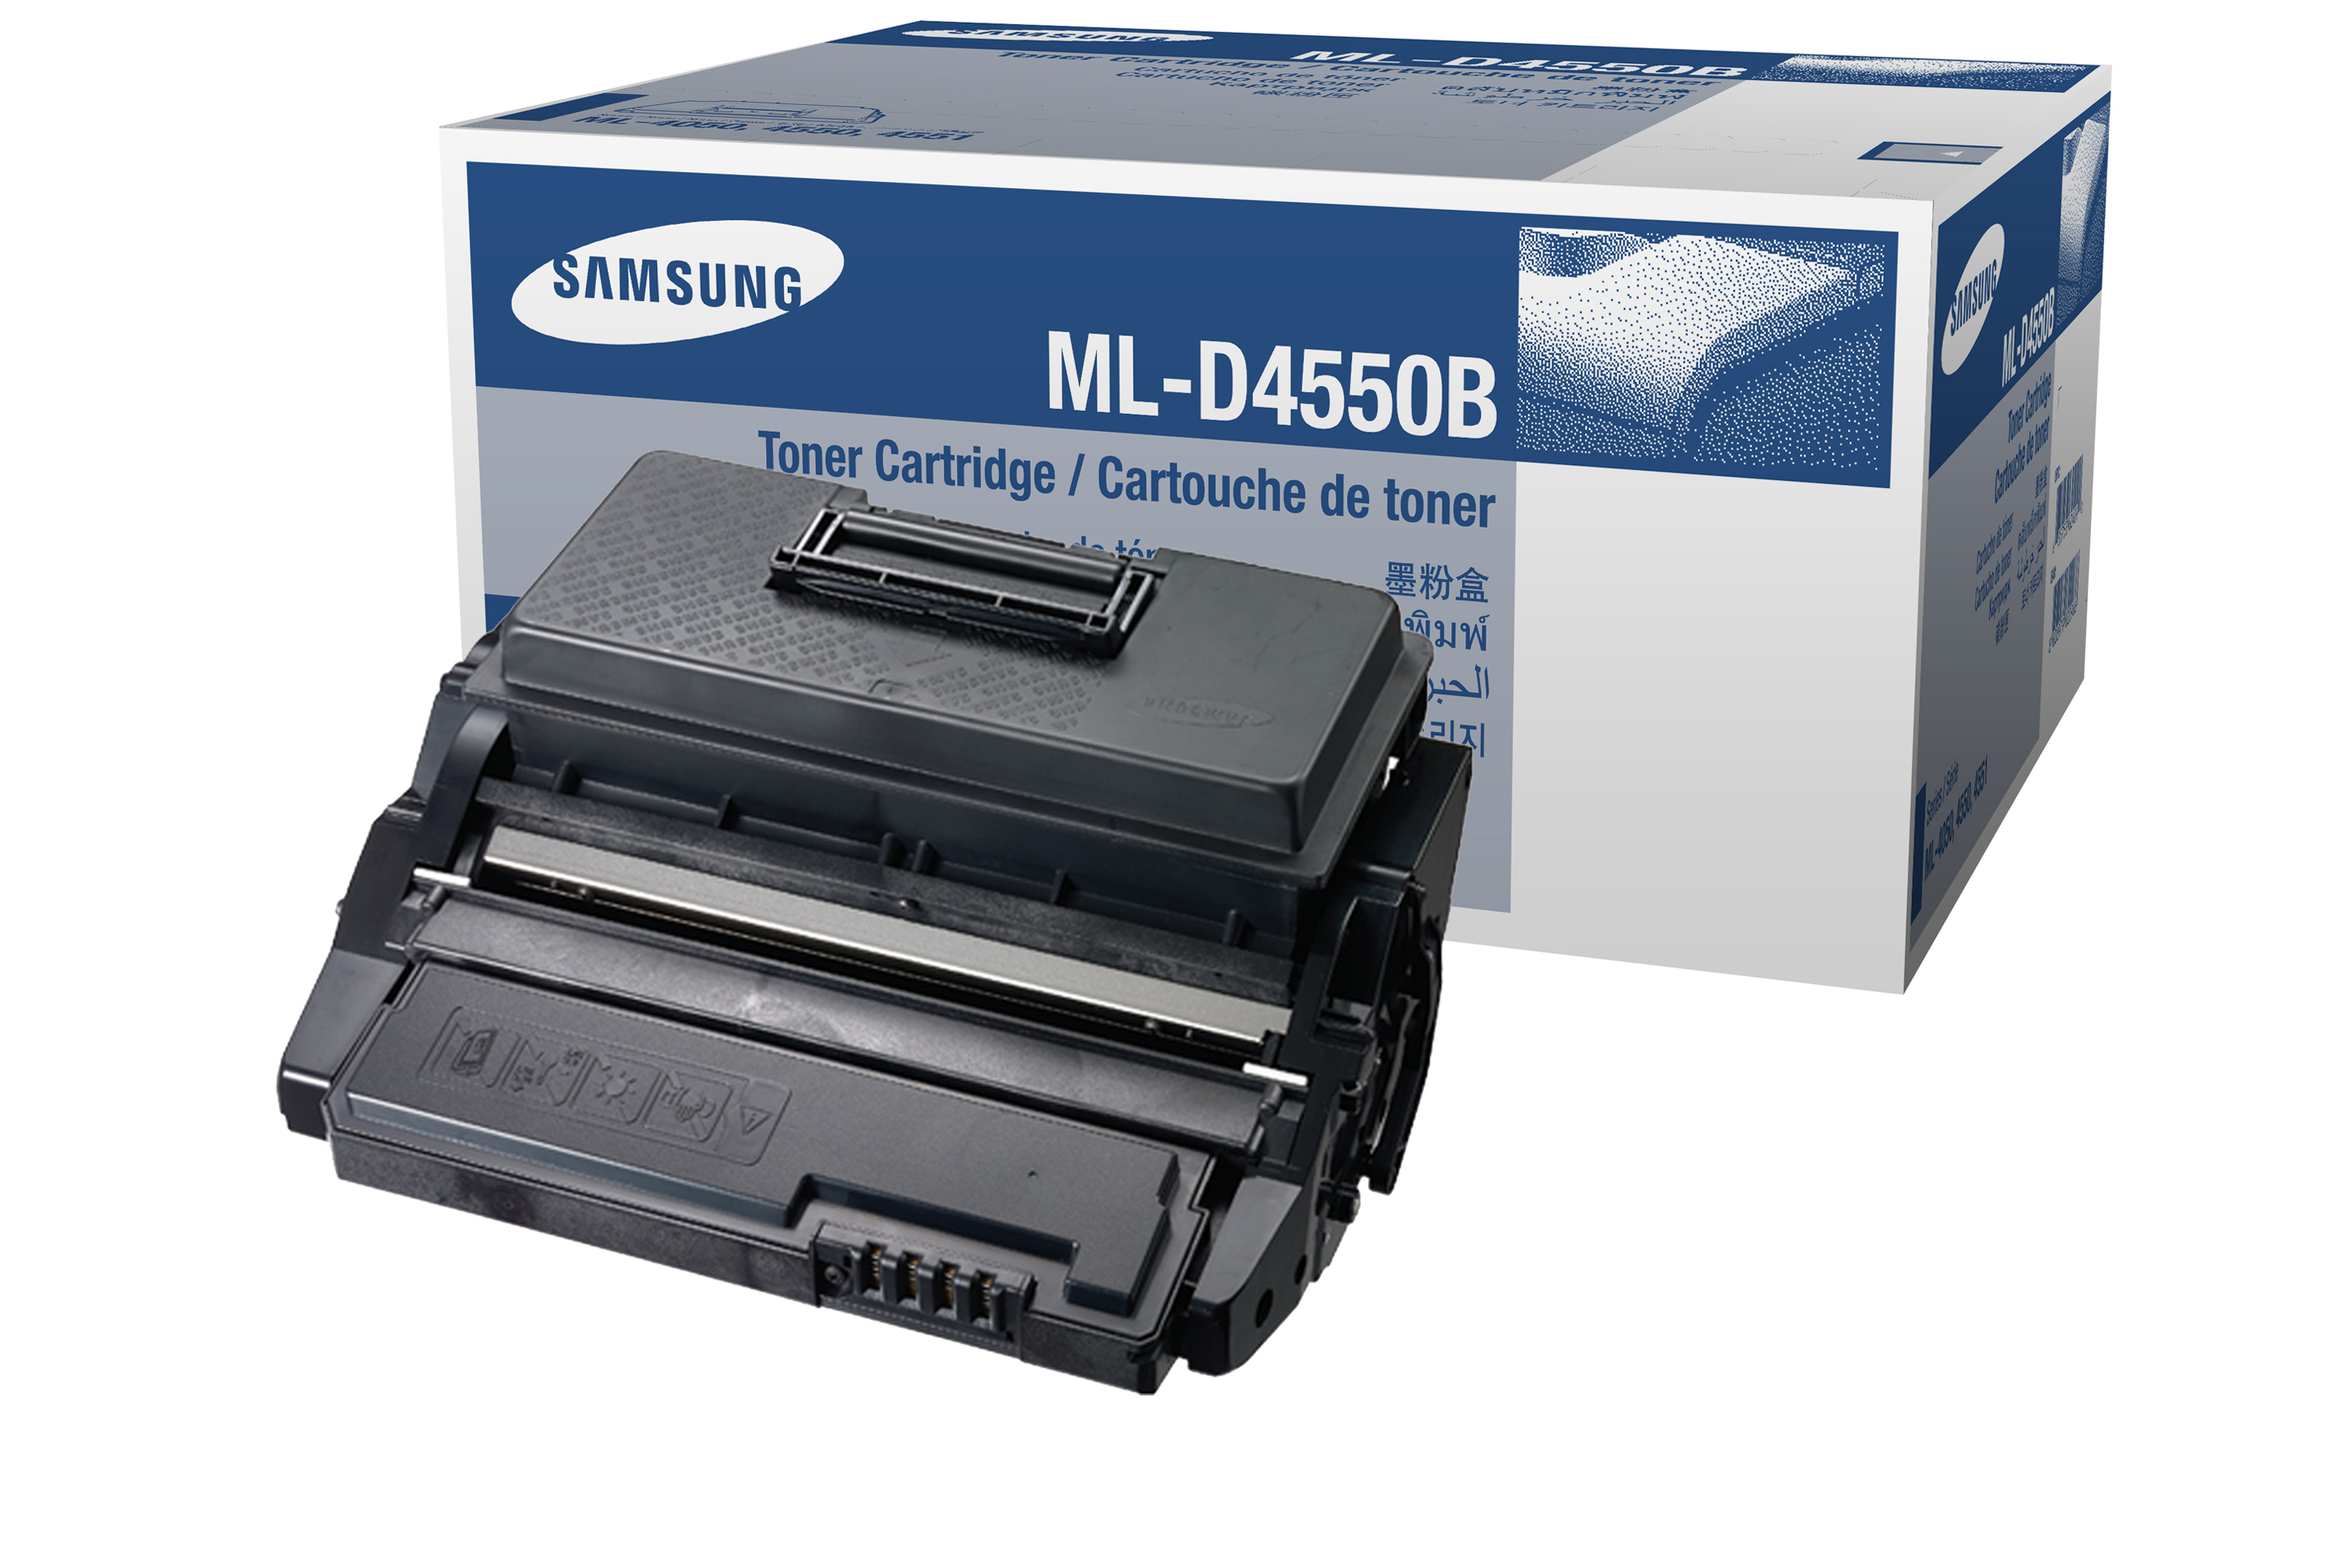 Remanufactured Samsung ML-D4550A Toner Cartridge Black 10k ML-D4550A - rem01